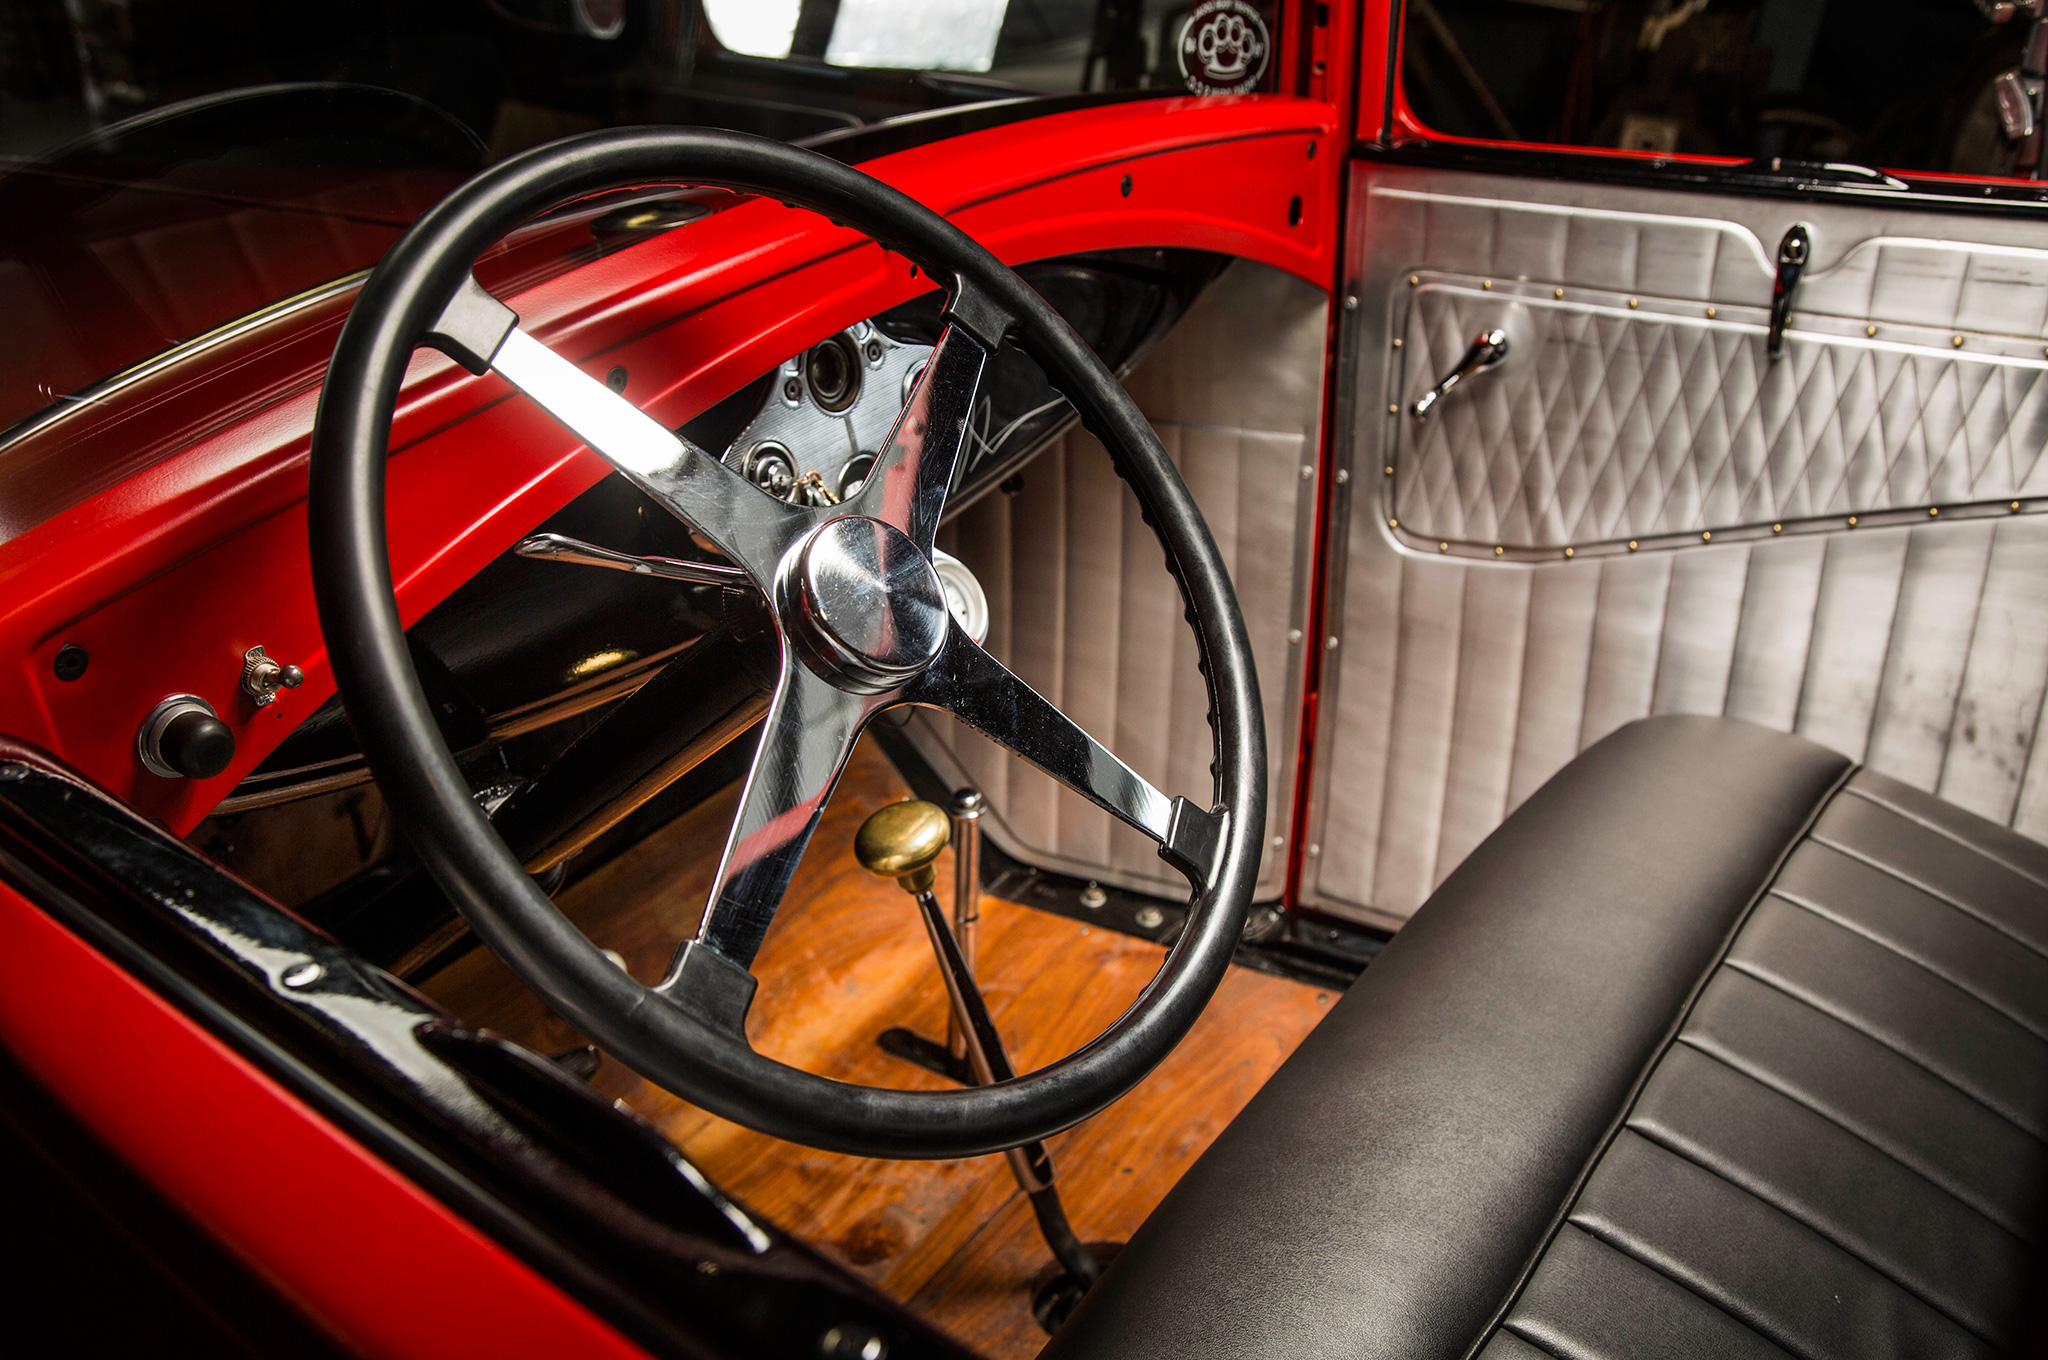 Joe puts miles on his Model A, so the interior has to be a comfortable place. He recovered the original seat in vinyl and mounted a Bell-style four-spoke steering wheel to the stock column. Those alloy door panels are from Bear Metal Kustoms.